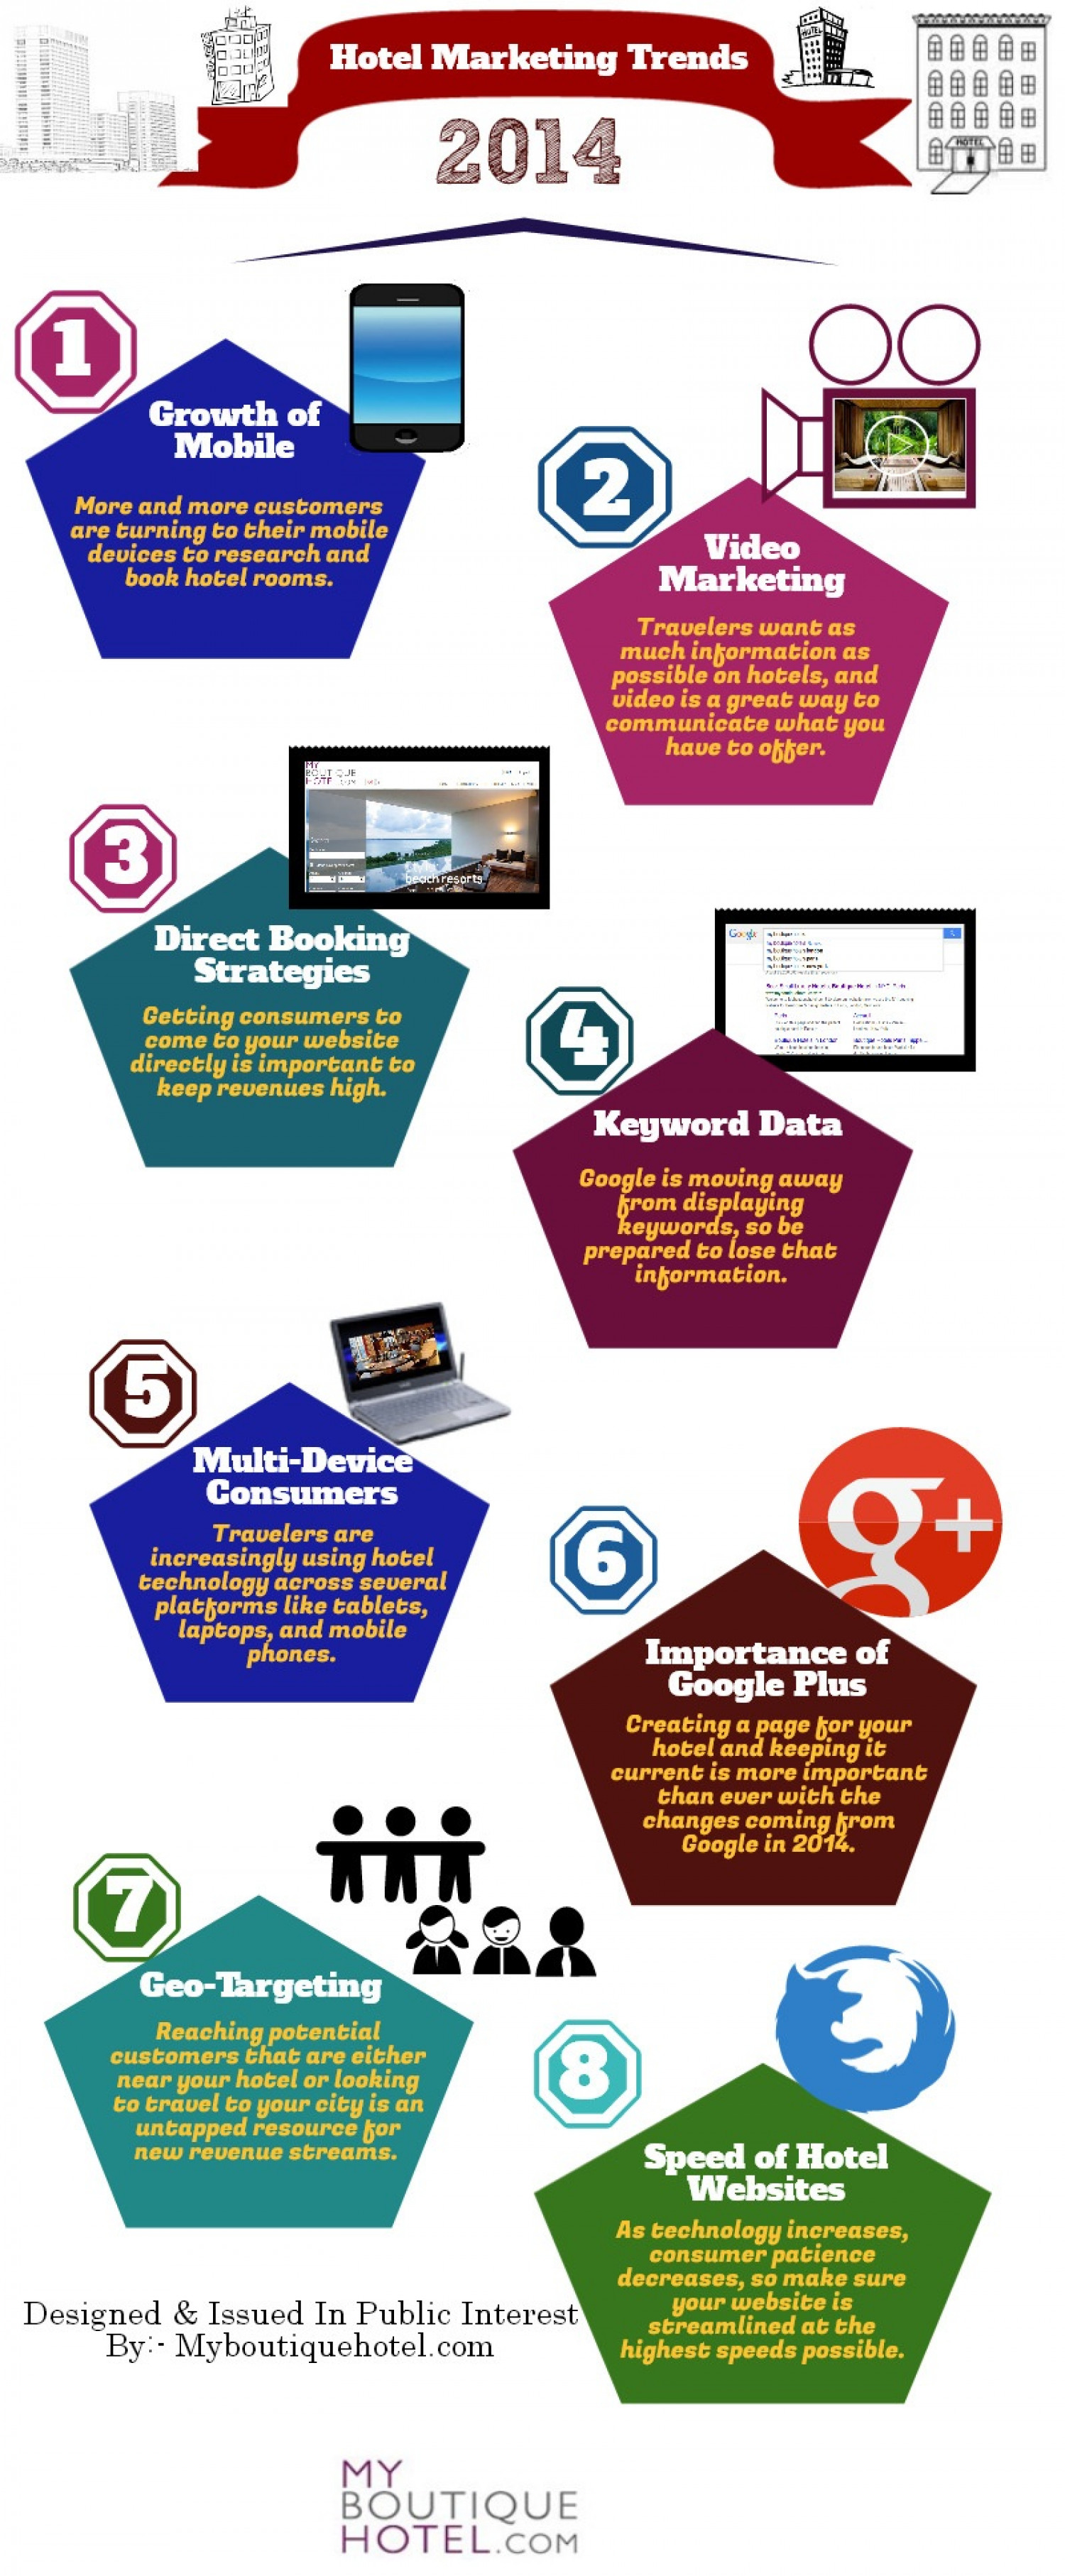 Hotel Marketing Trends for 2014 Infographic